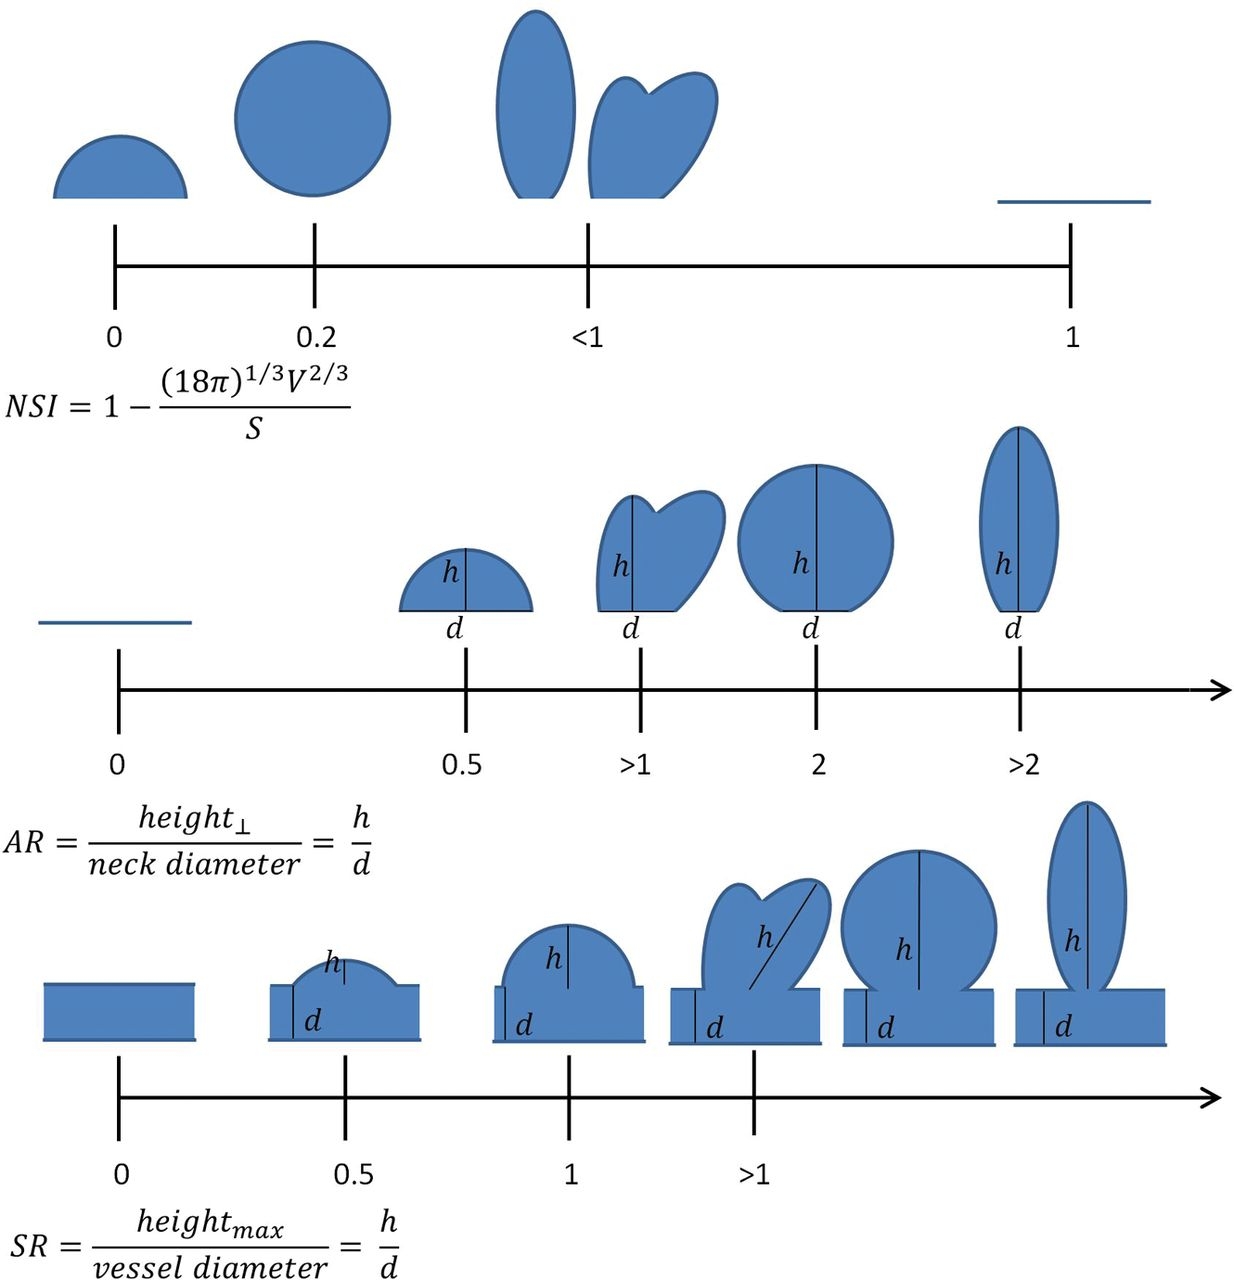 Nonsphericity Index and Size Ratio Identify Morphologic Differences